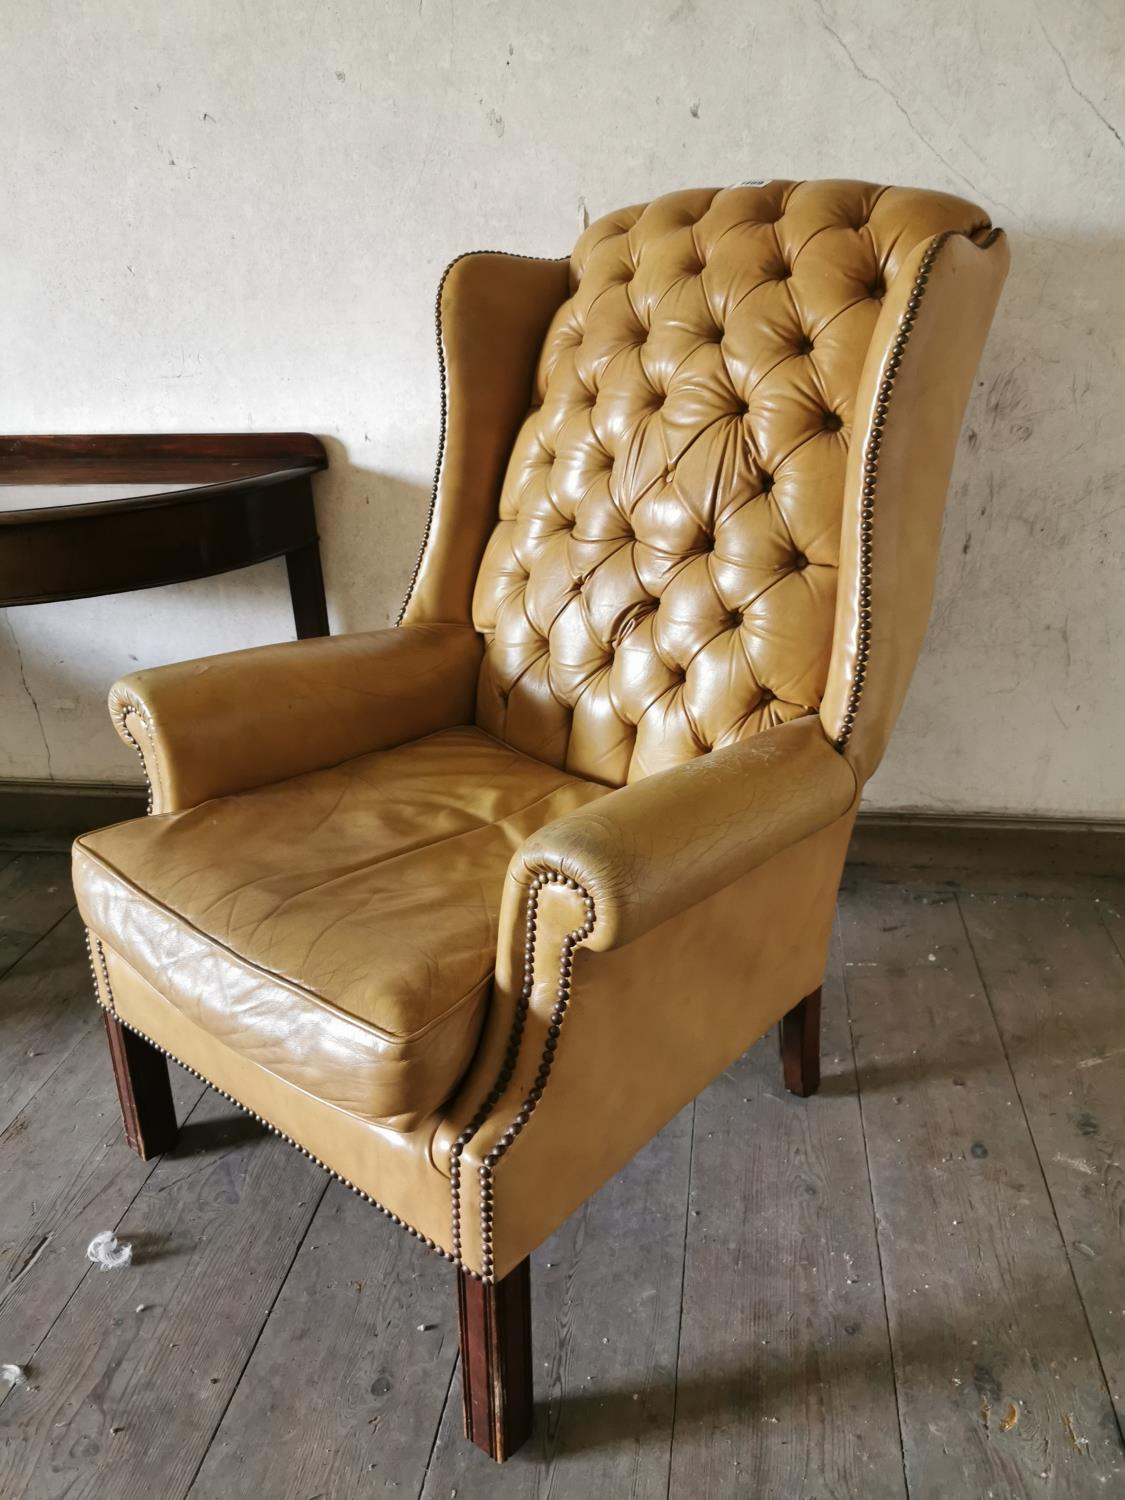 Pair of tanned leather arm chairs. - Image 2 of 2